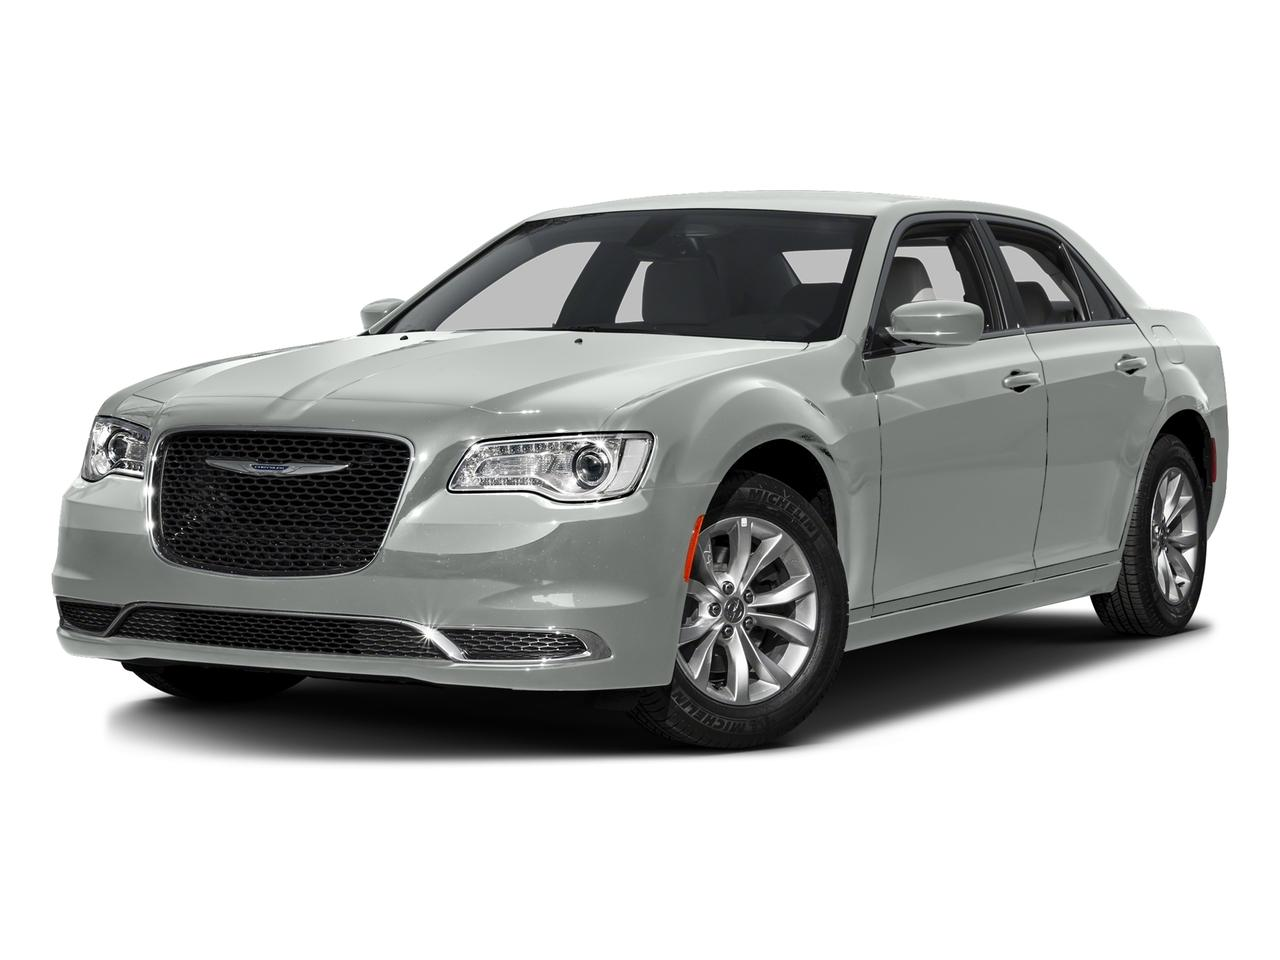 2016 Chrysler 300 Vehicle Photo in Beaufort, SC 29906